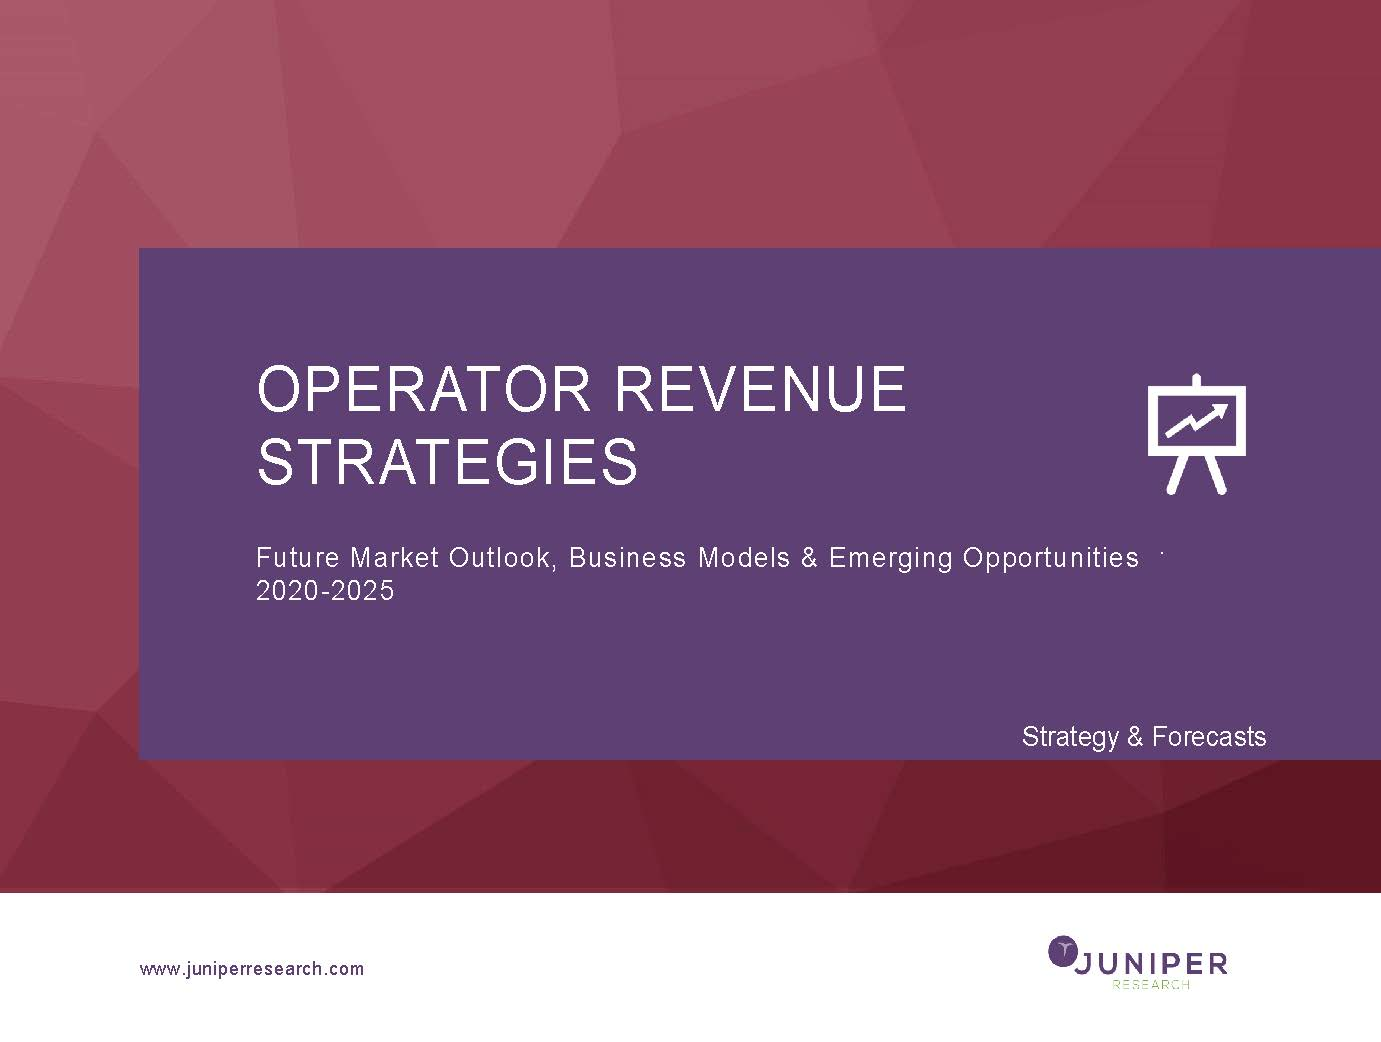 Operator Revenue Strategies: Future Market Outlook, Business Models & Emerging Opportunities 2020-2025